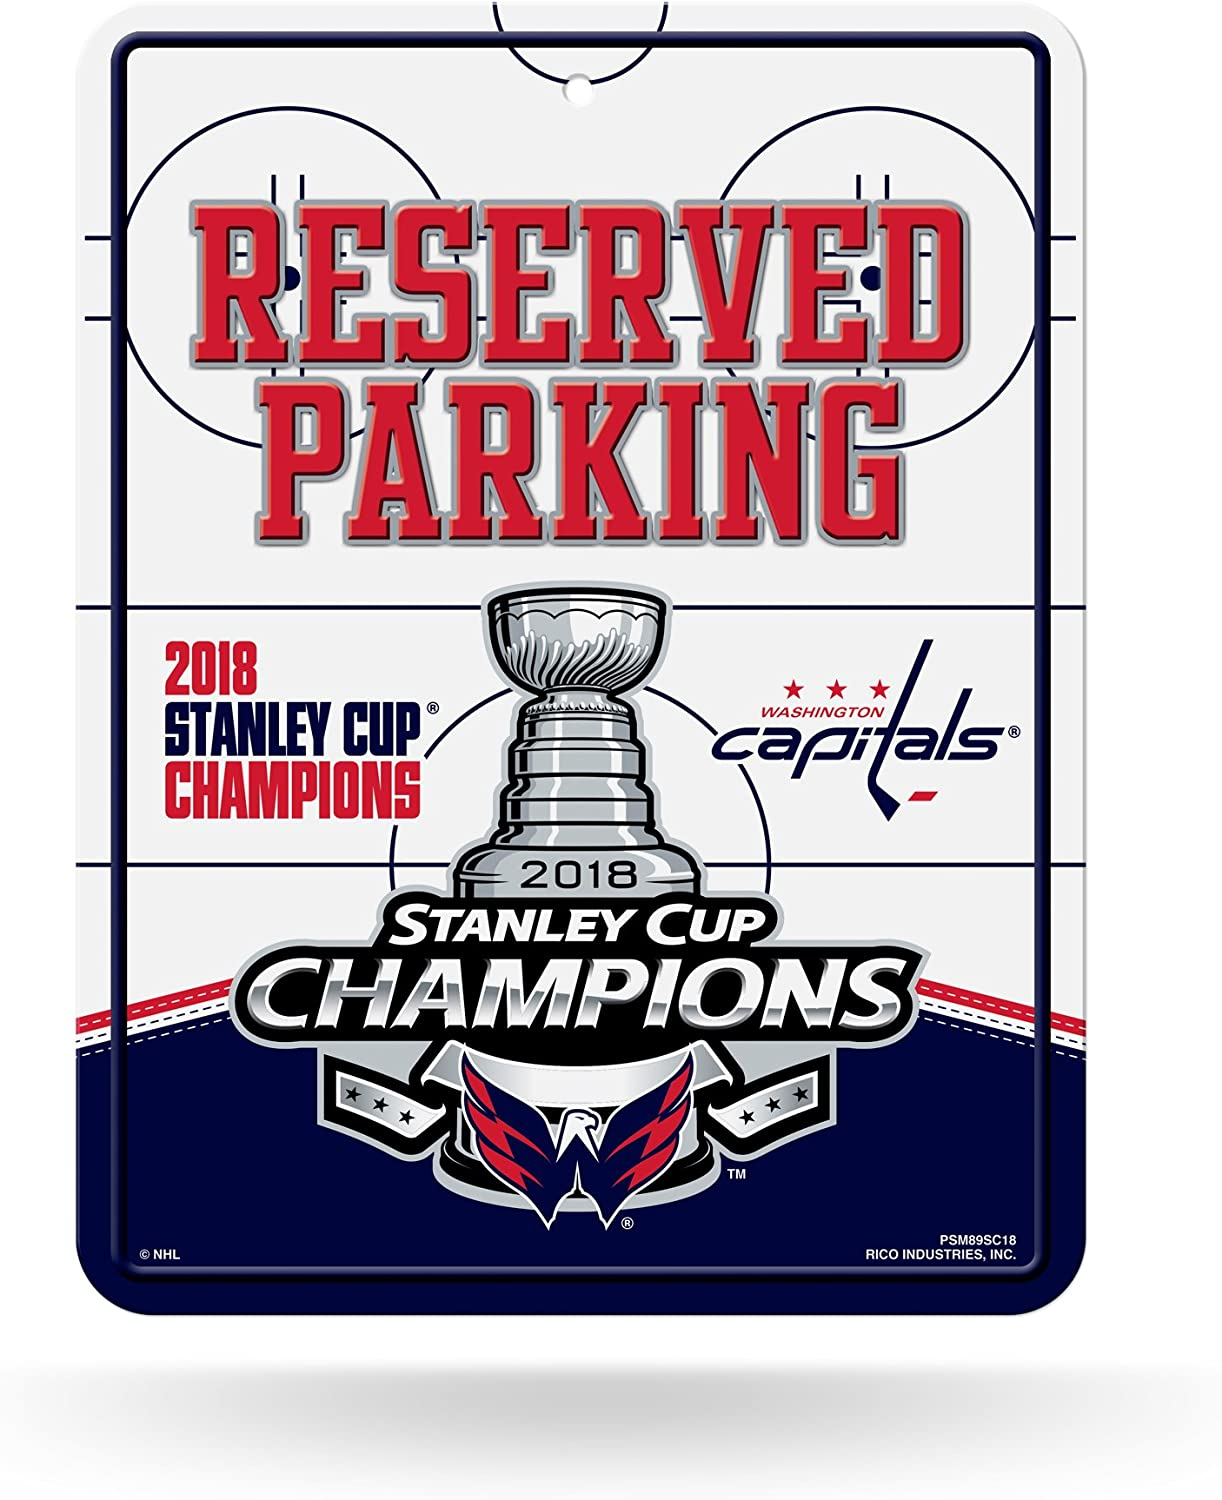 Rico Industries NHL Washington Capitals 2018 Stanley Cup Champions 8-Inch by 11-Inch Metal Parking Sign Décor